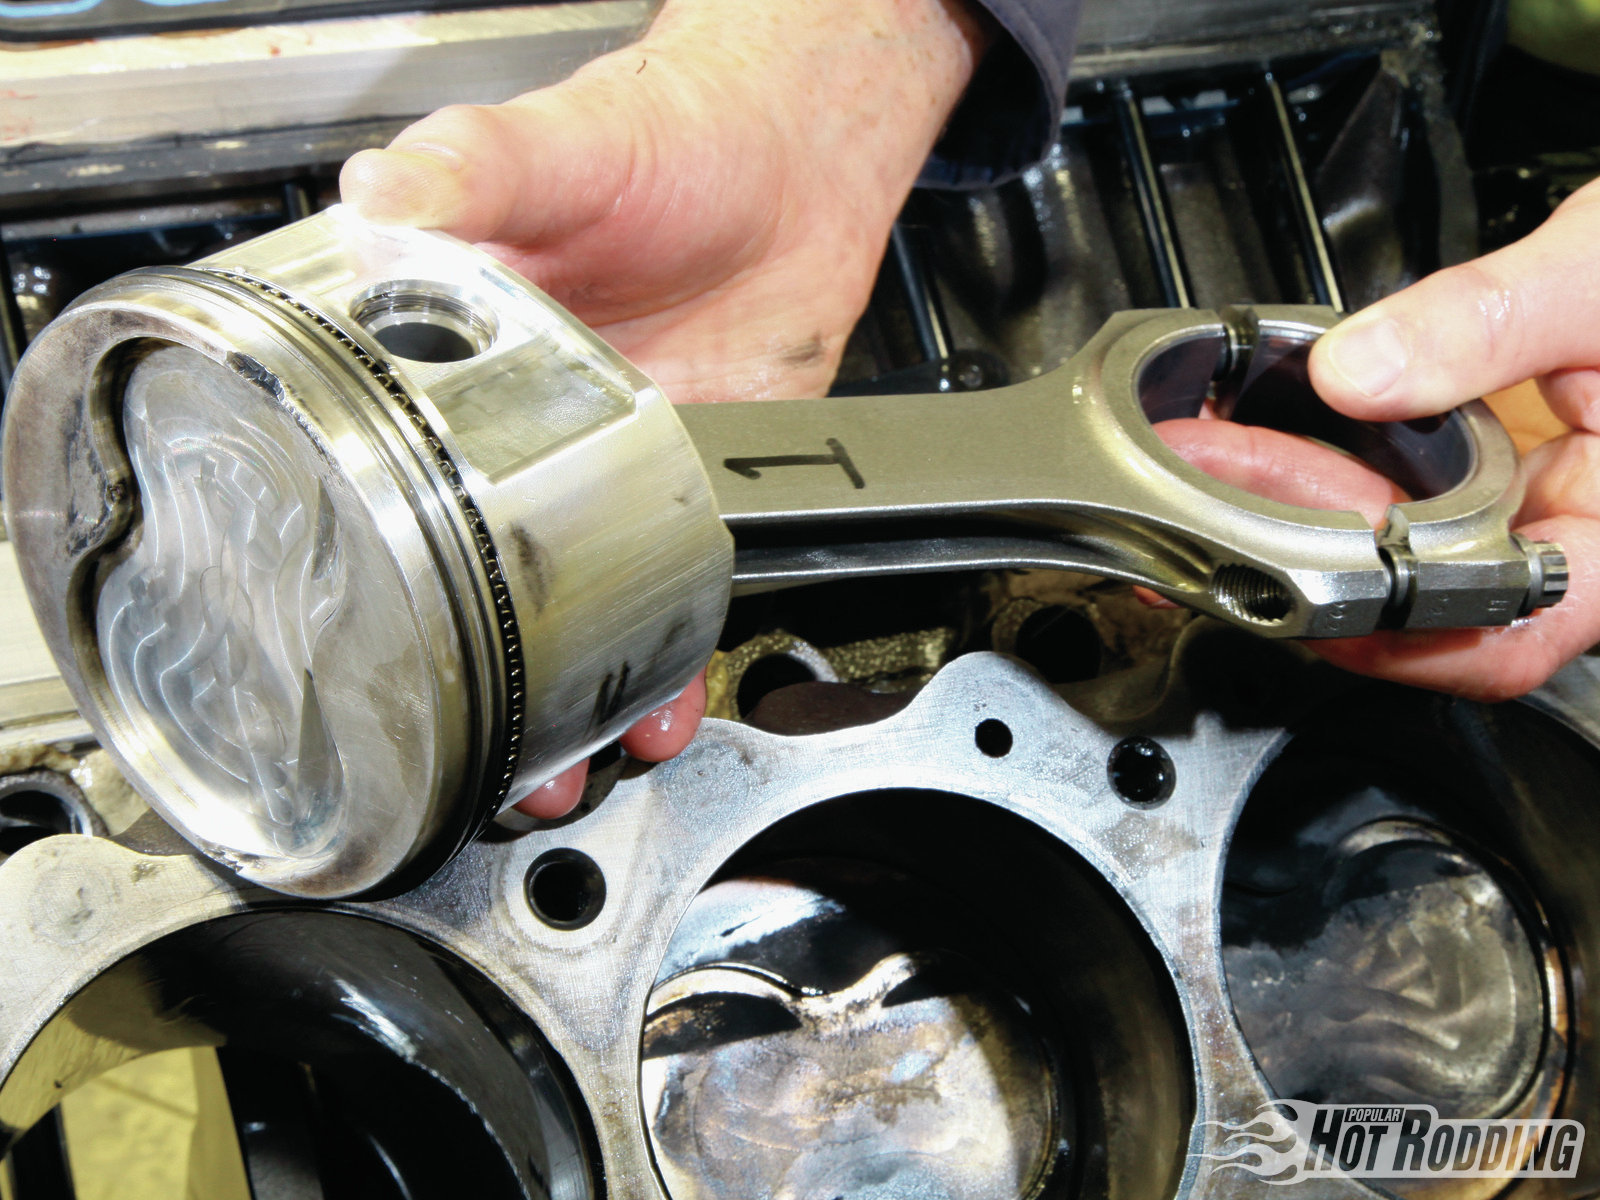 Filling the bores are a set of JE forged pistons hanging from Scat H-beam rods. The pistons were modified by engine builder Mike Semchee with a dish matching the combustion chambers. The effect of the volumes involved tally to a pump-gas friendly compression ratio of 10.4:1.